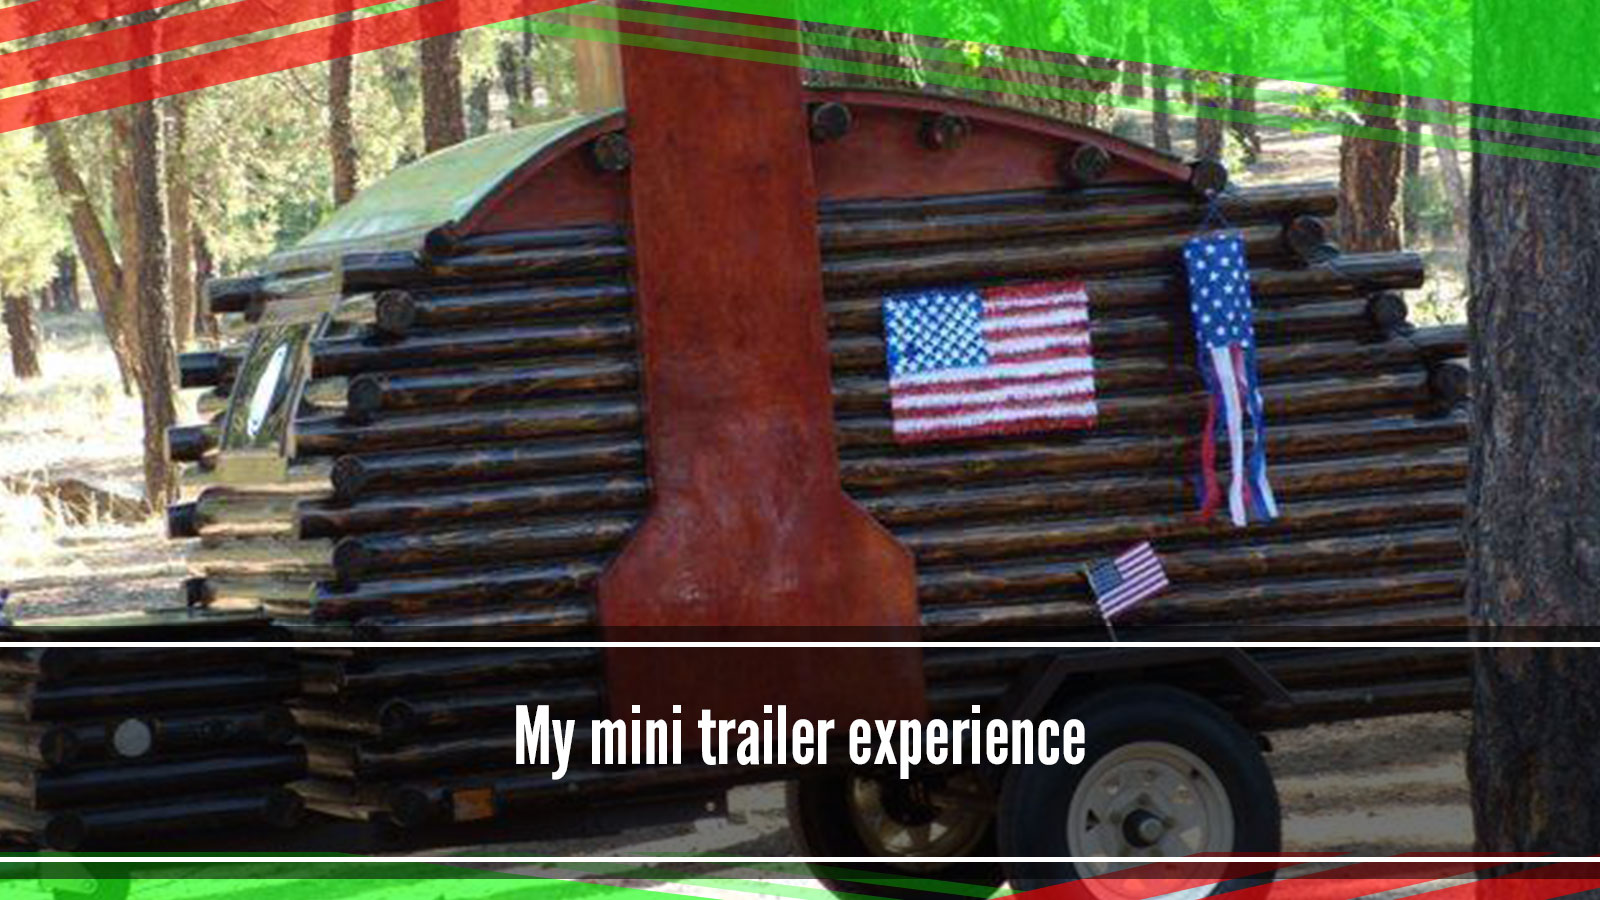 My mini trailer